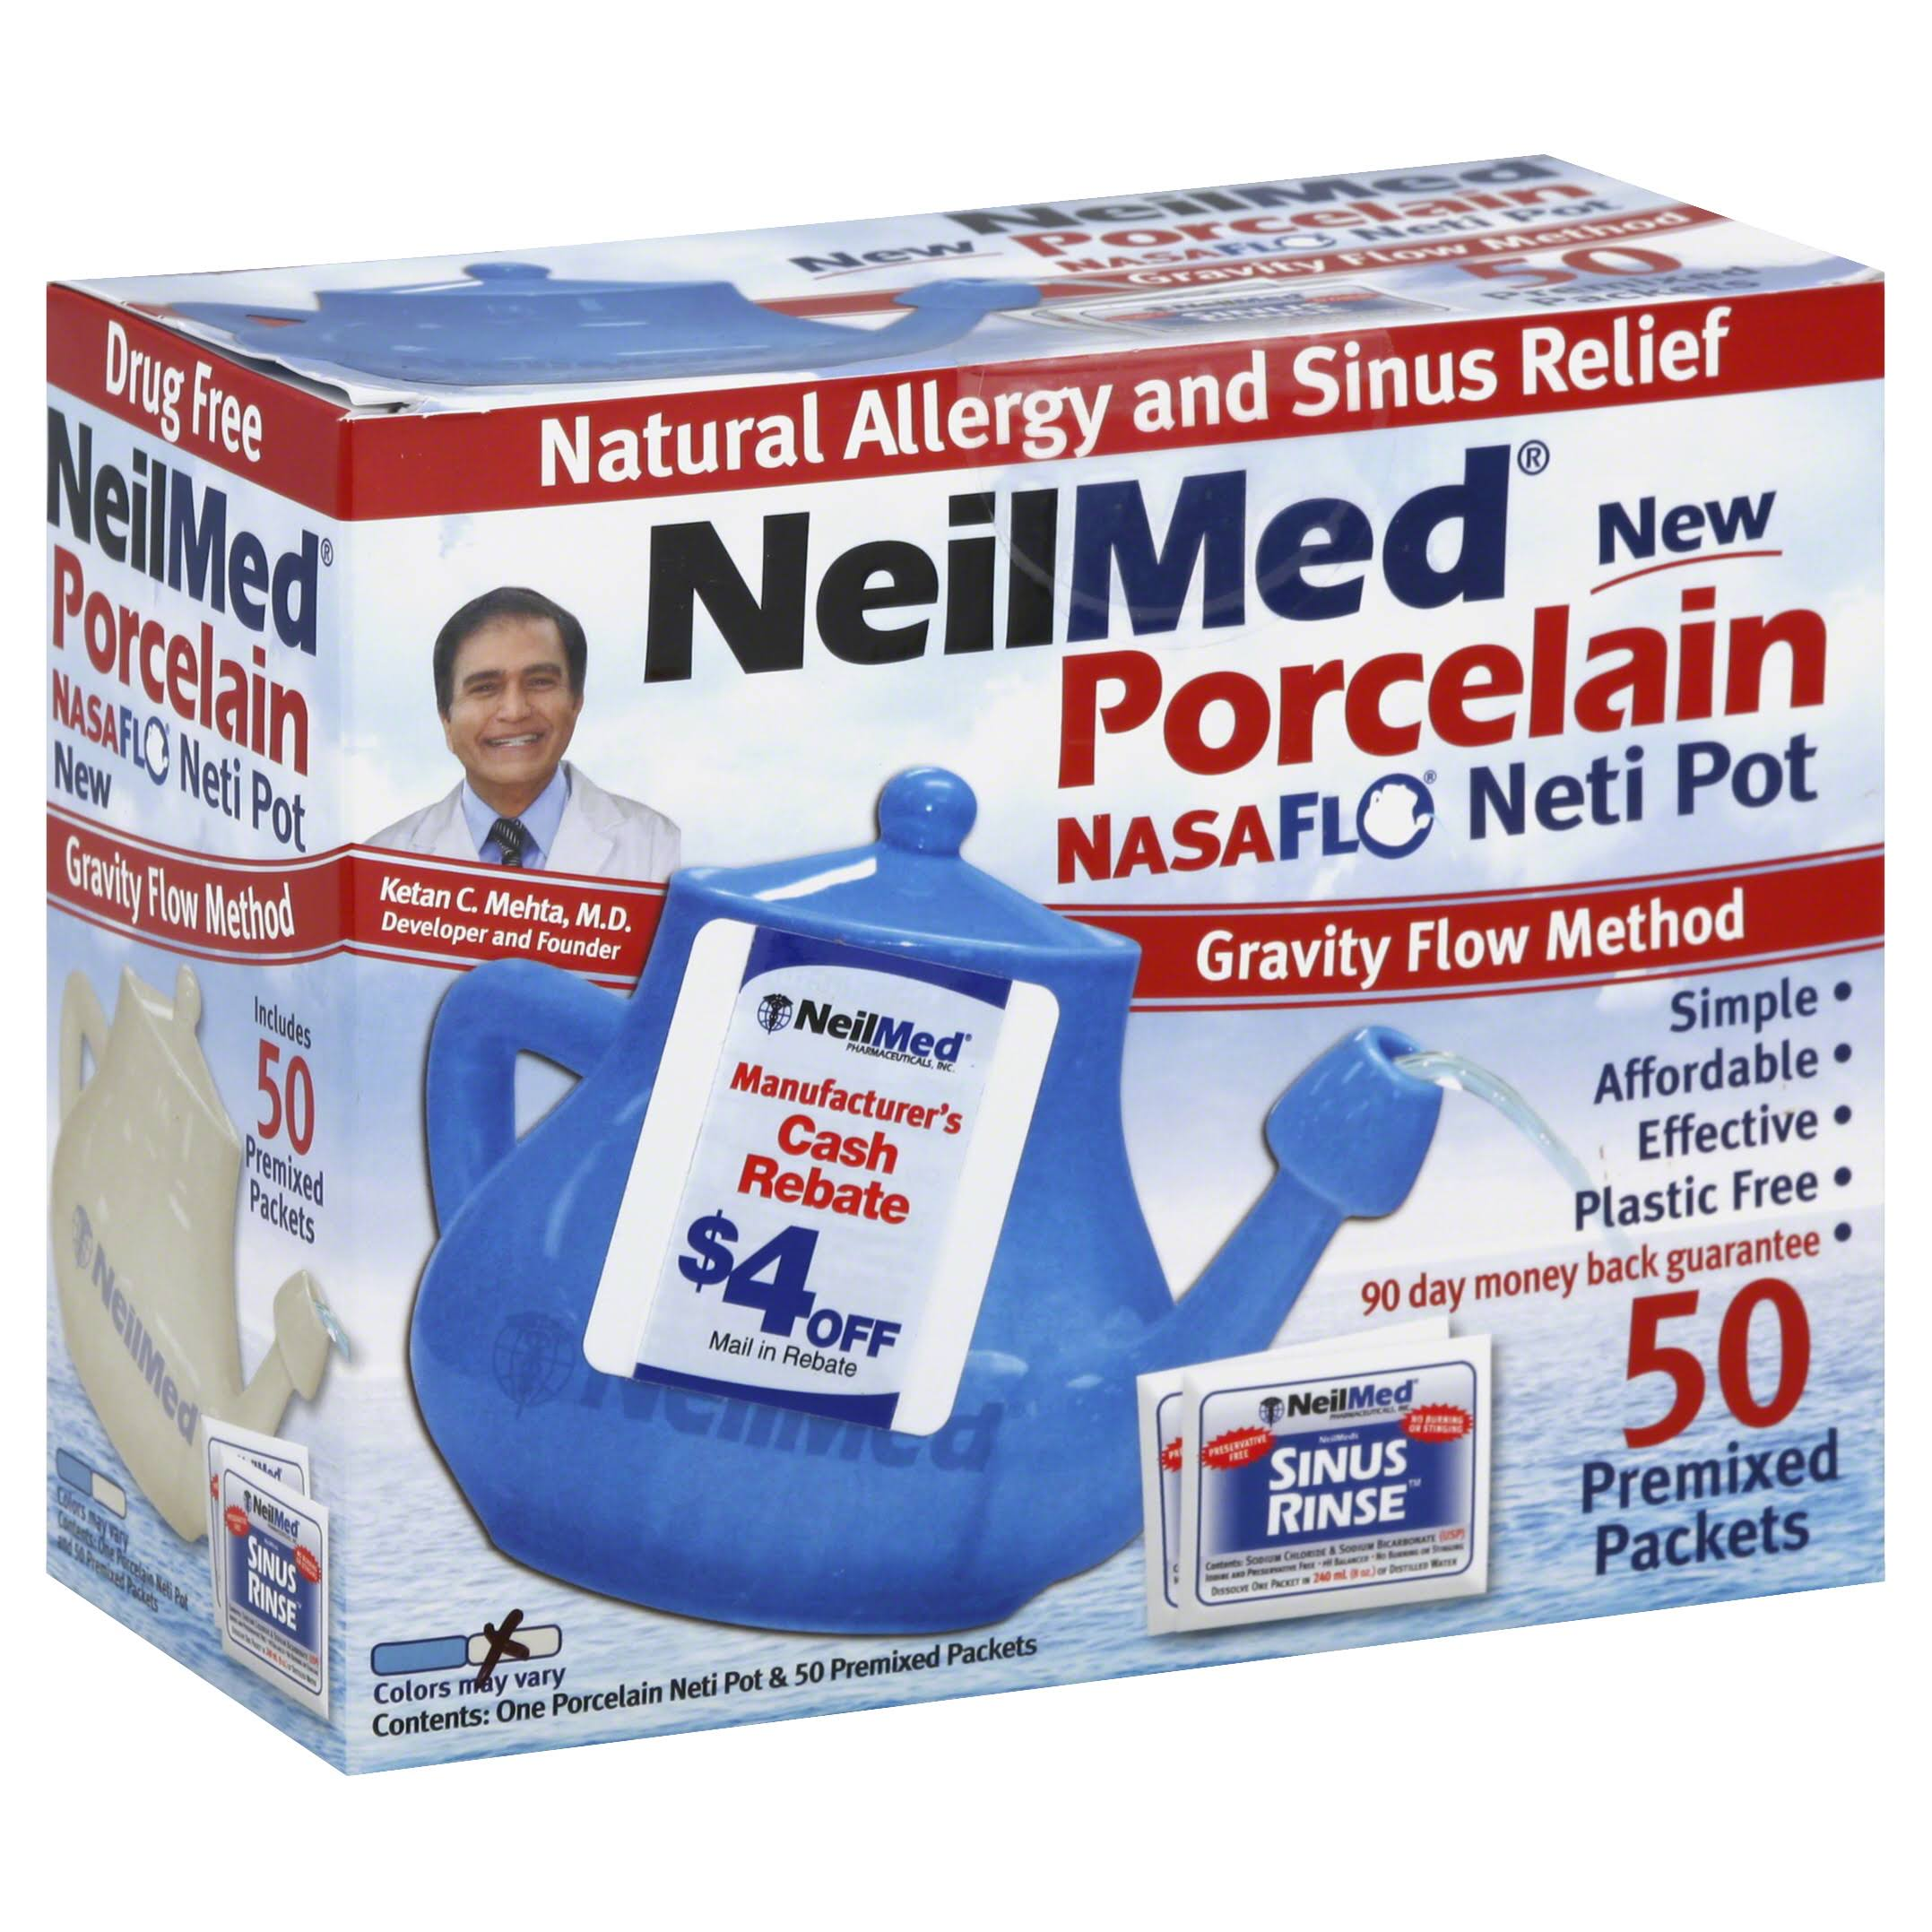 NeilMed NasaFlo Sinus Relief Porcelain Neti Pot - with 50 Sachets